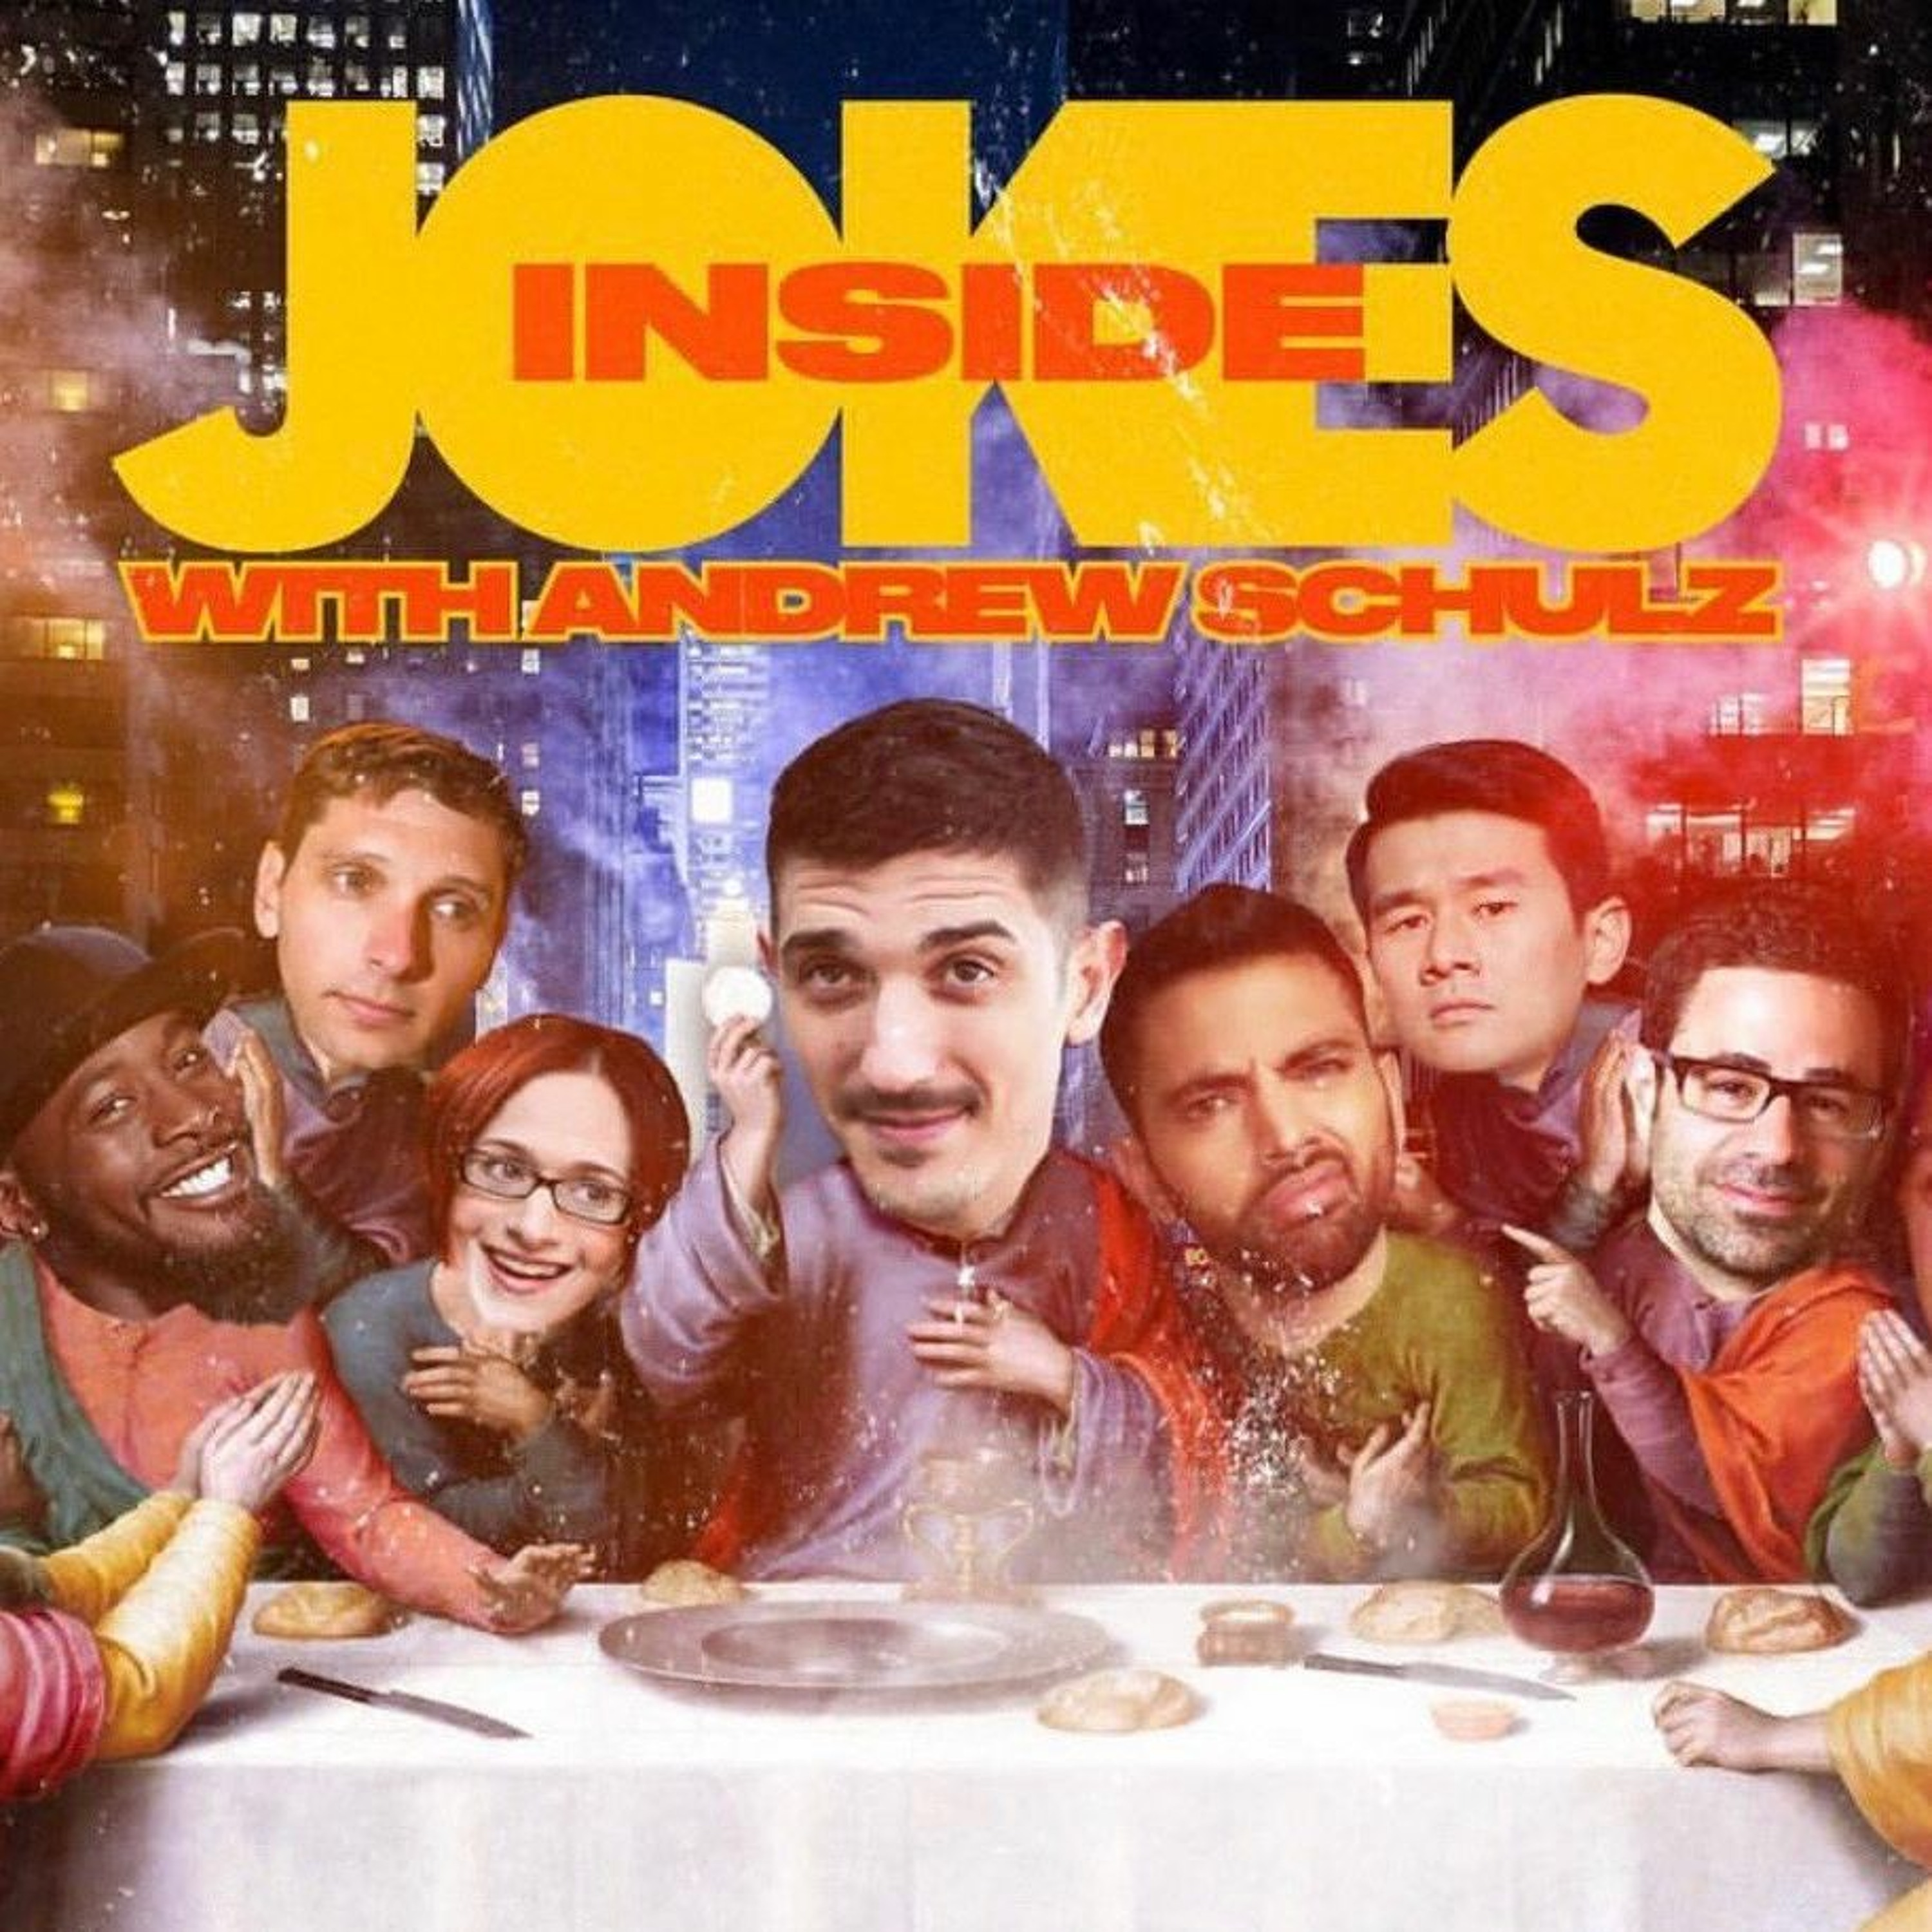 Are There Any Subjects Off - Limits Andrew Schulz, Gary Owen